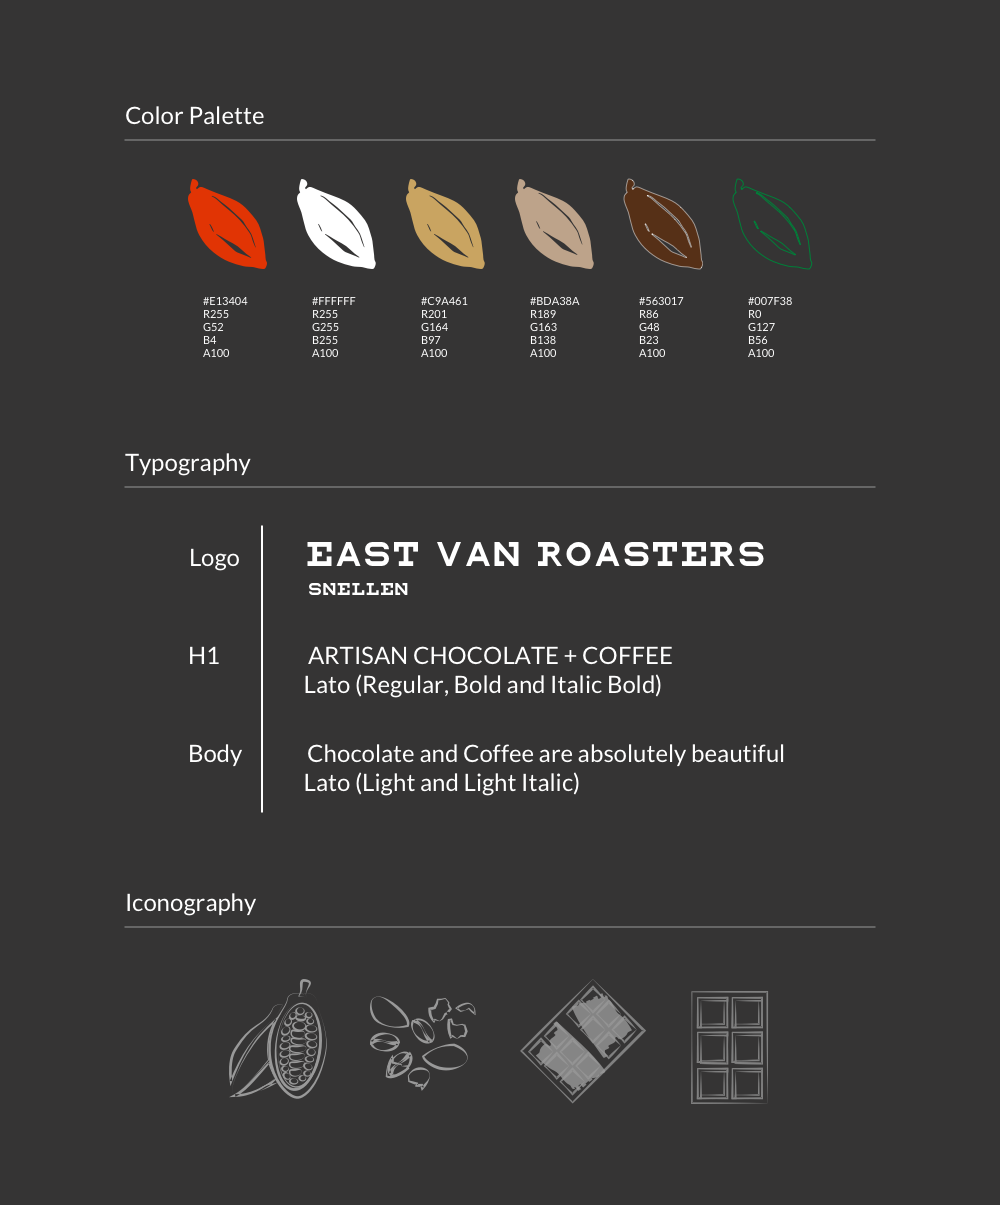 - Style guide was created based on the moodboard, to make sure the important elements are carried through. EVR prides themselves in the bean-to-bar process, and the bean has a strong presence in the brand identity. Font Lato was chosen to bring a sense of calmness in contrast to the eccentric main logo font of 'snellen'.Icons were created to illustrate the bean-to-bar process, outlined in light grey against the black to give a hand-drawn look.